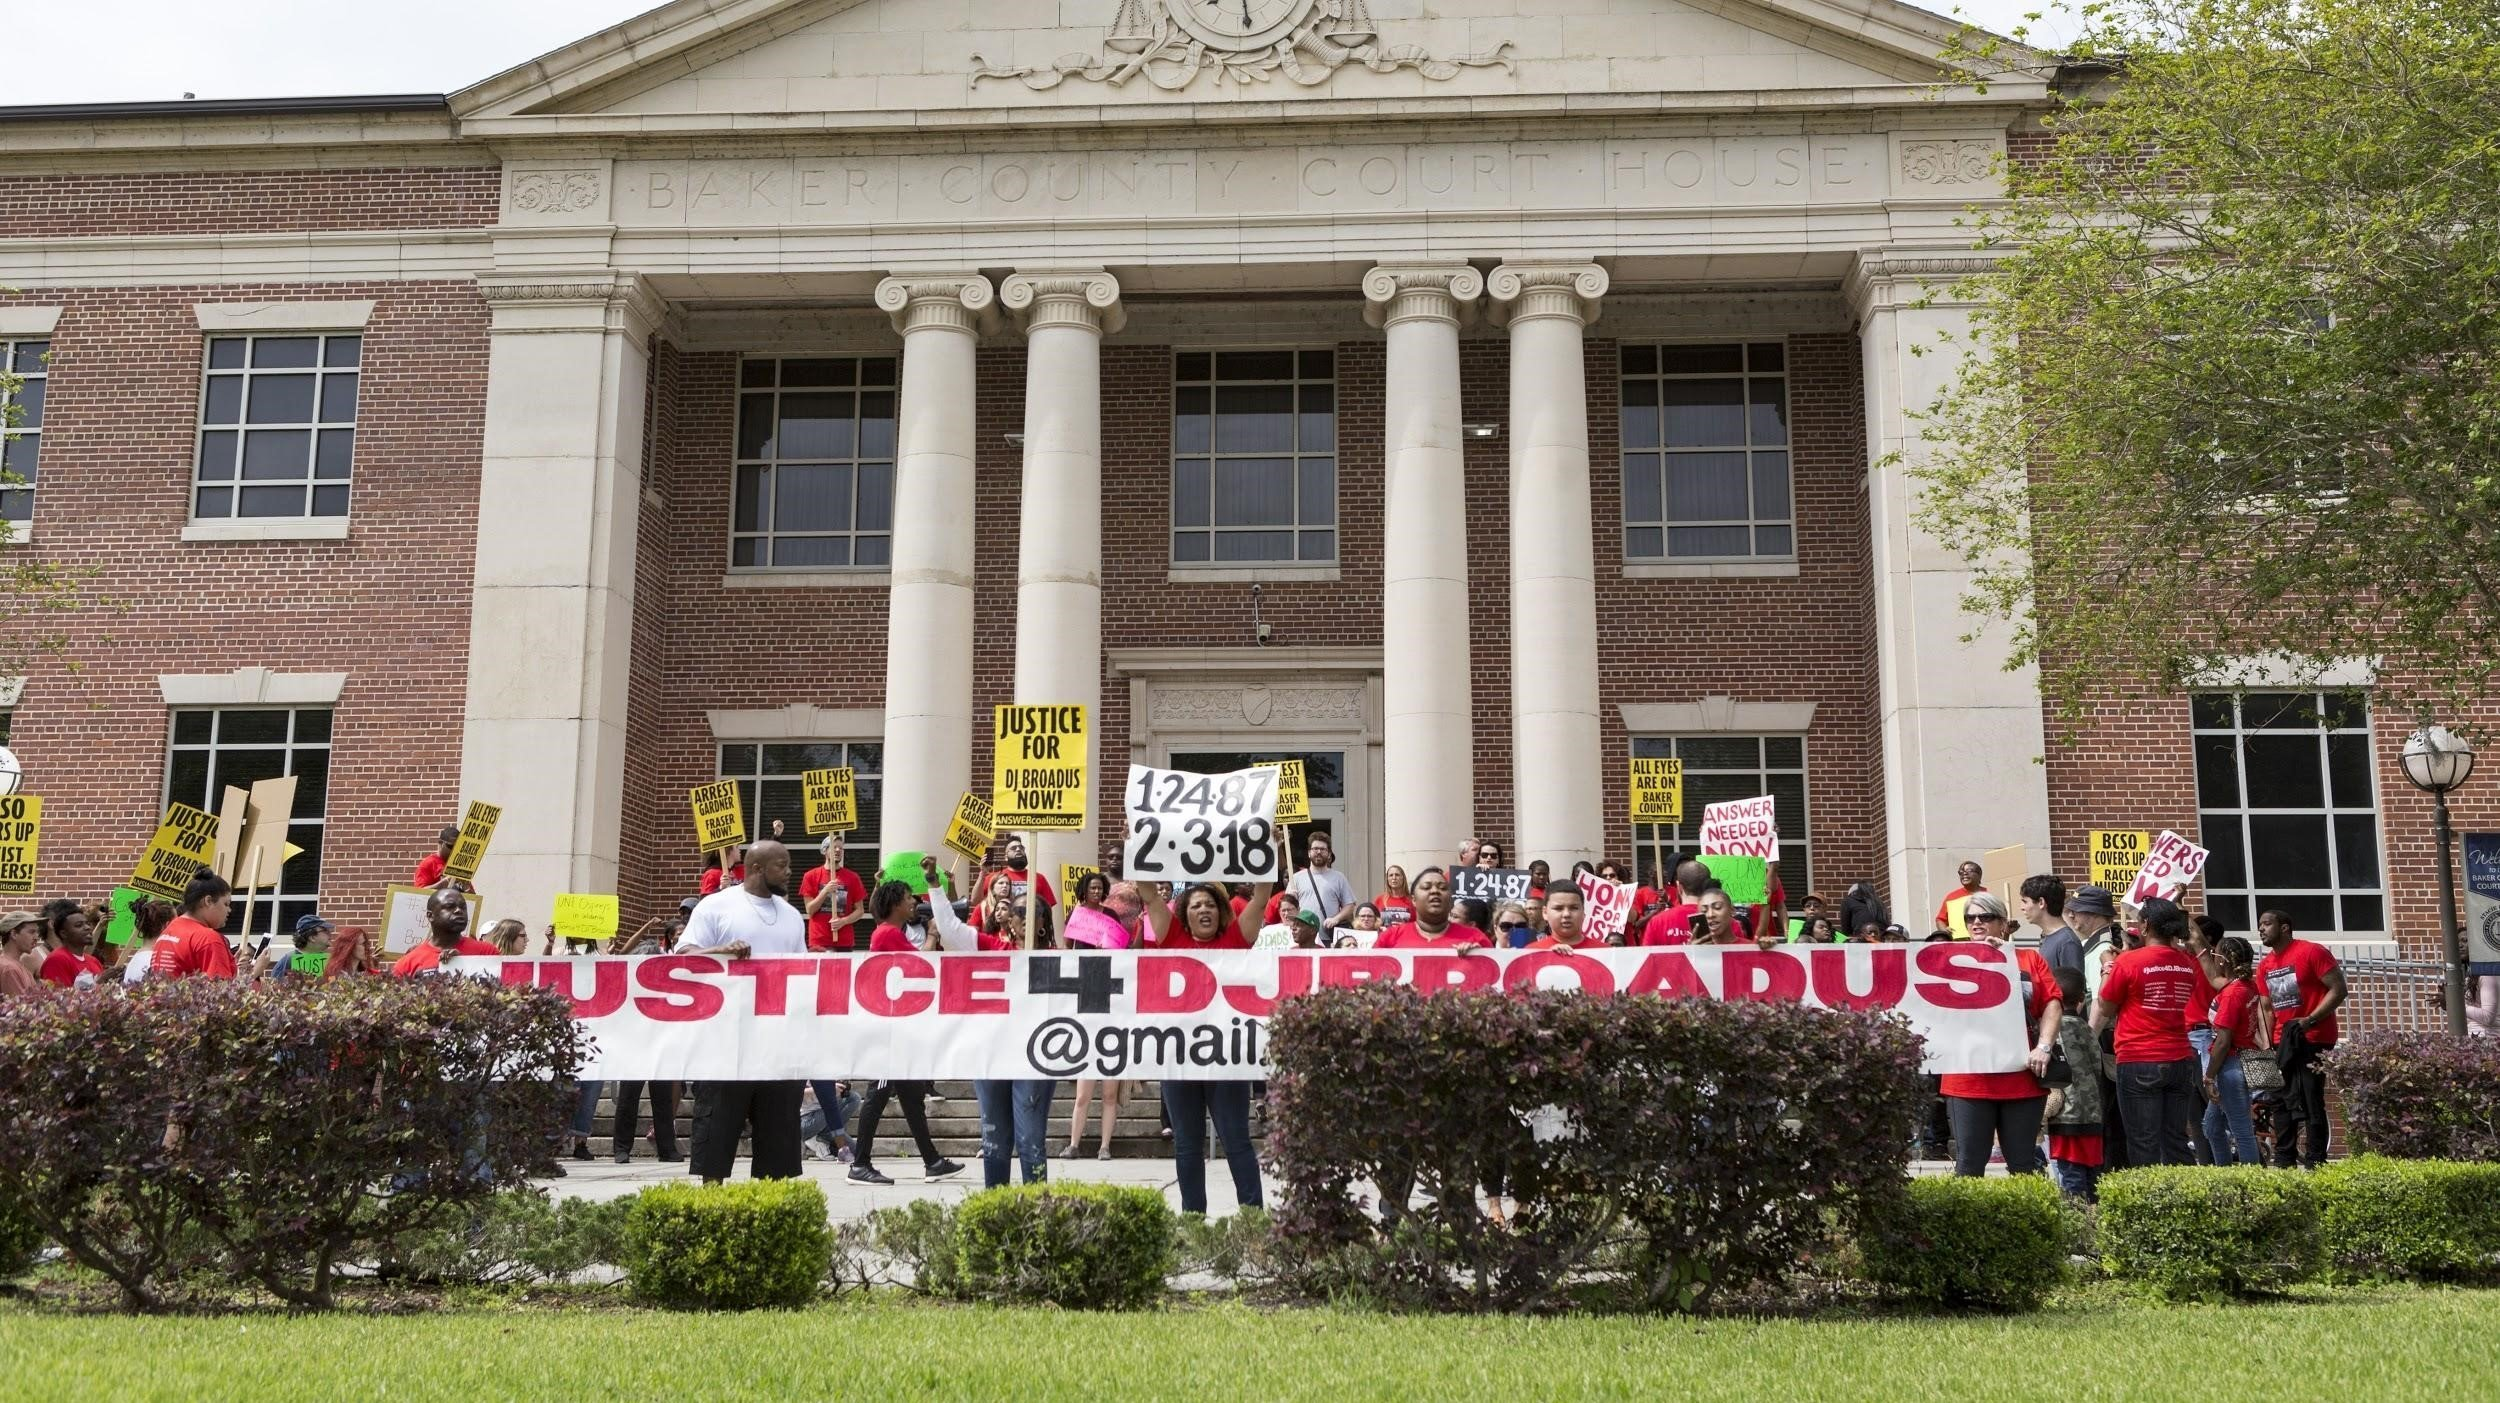 Community members gather in front of the Baker County Courthouse in Macclenny, Florida, to demand justice for DJ Broadus. photo credit Emil Ashok.